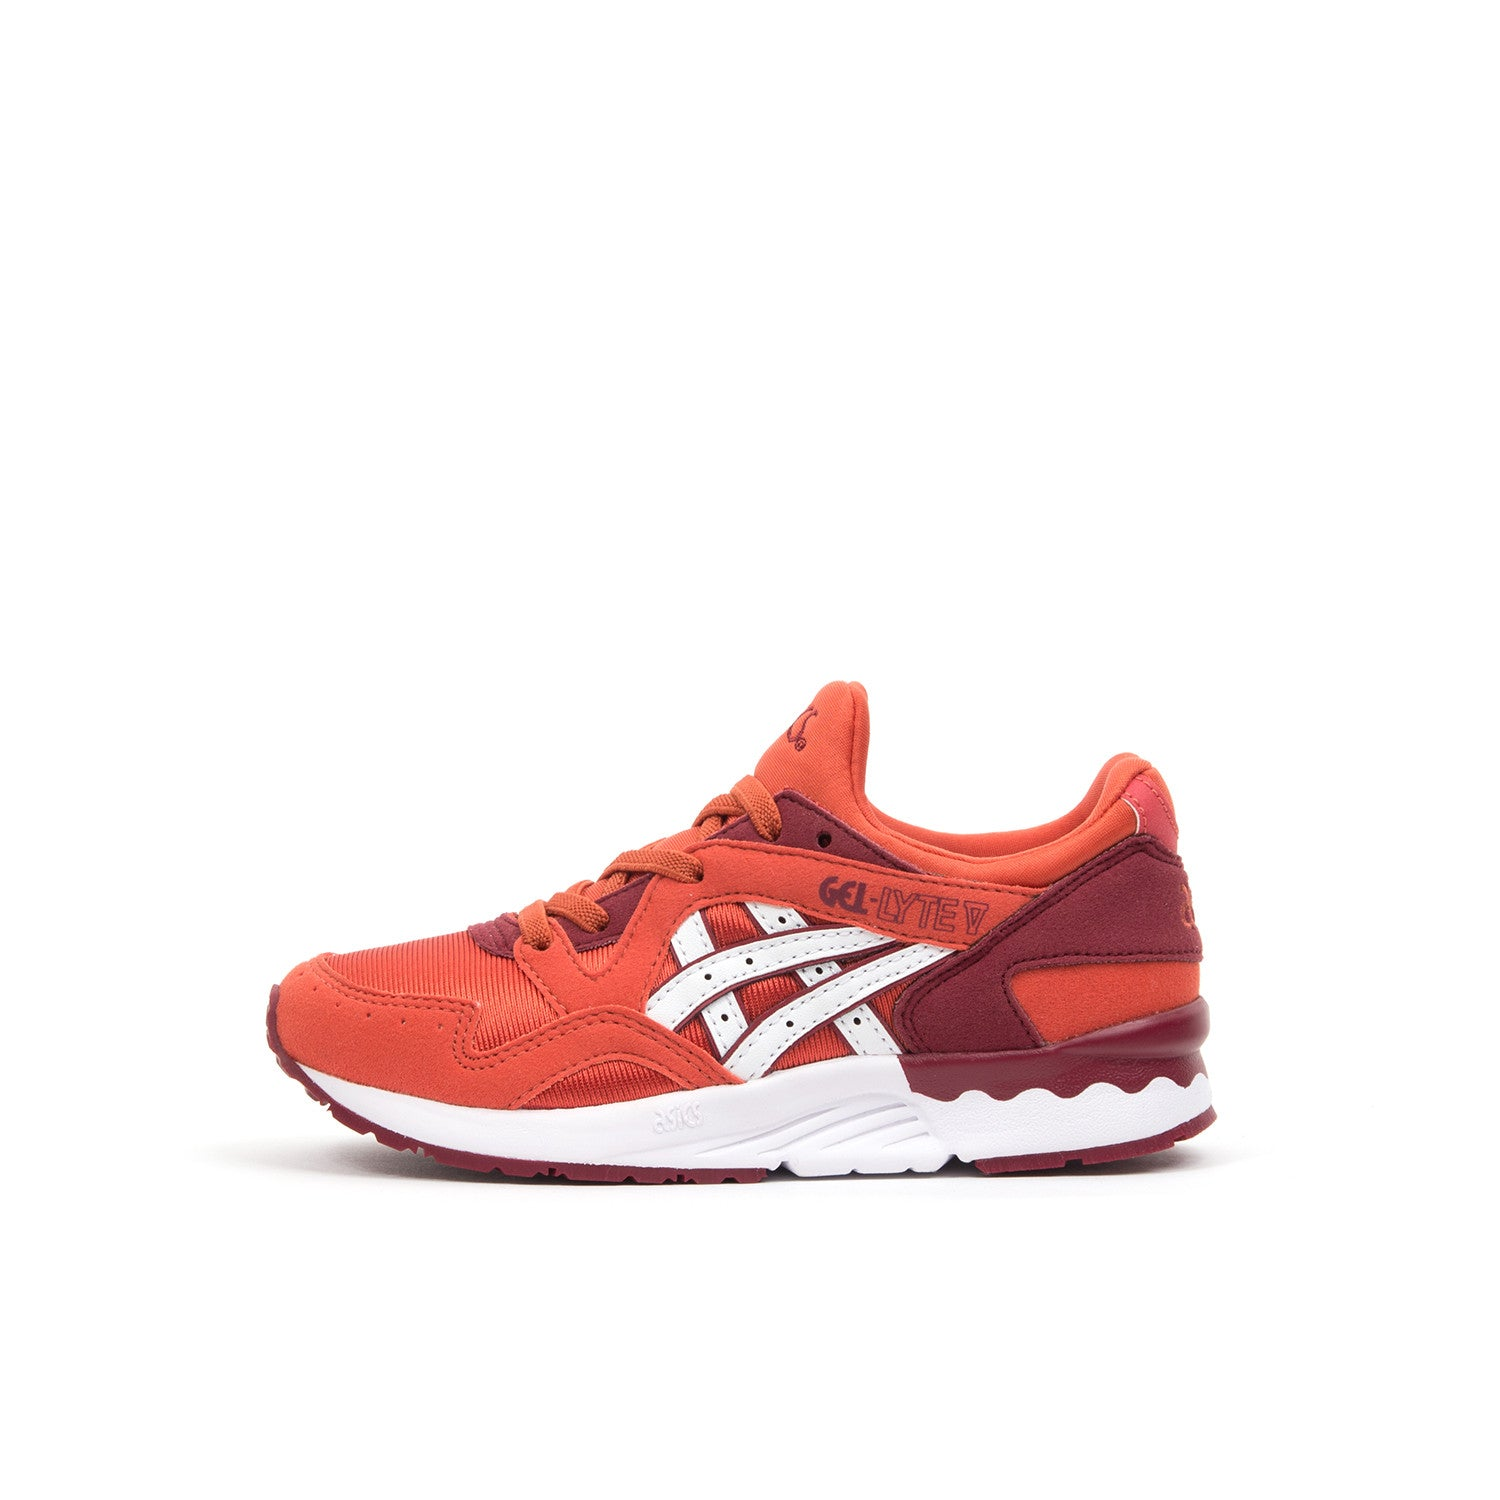 Asics Gel-Lyte V PS Chili/White - Concrete